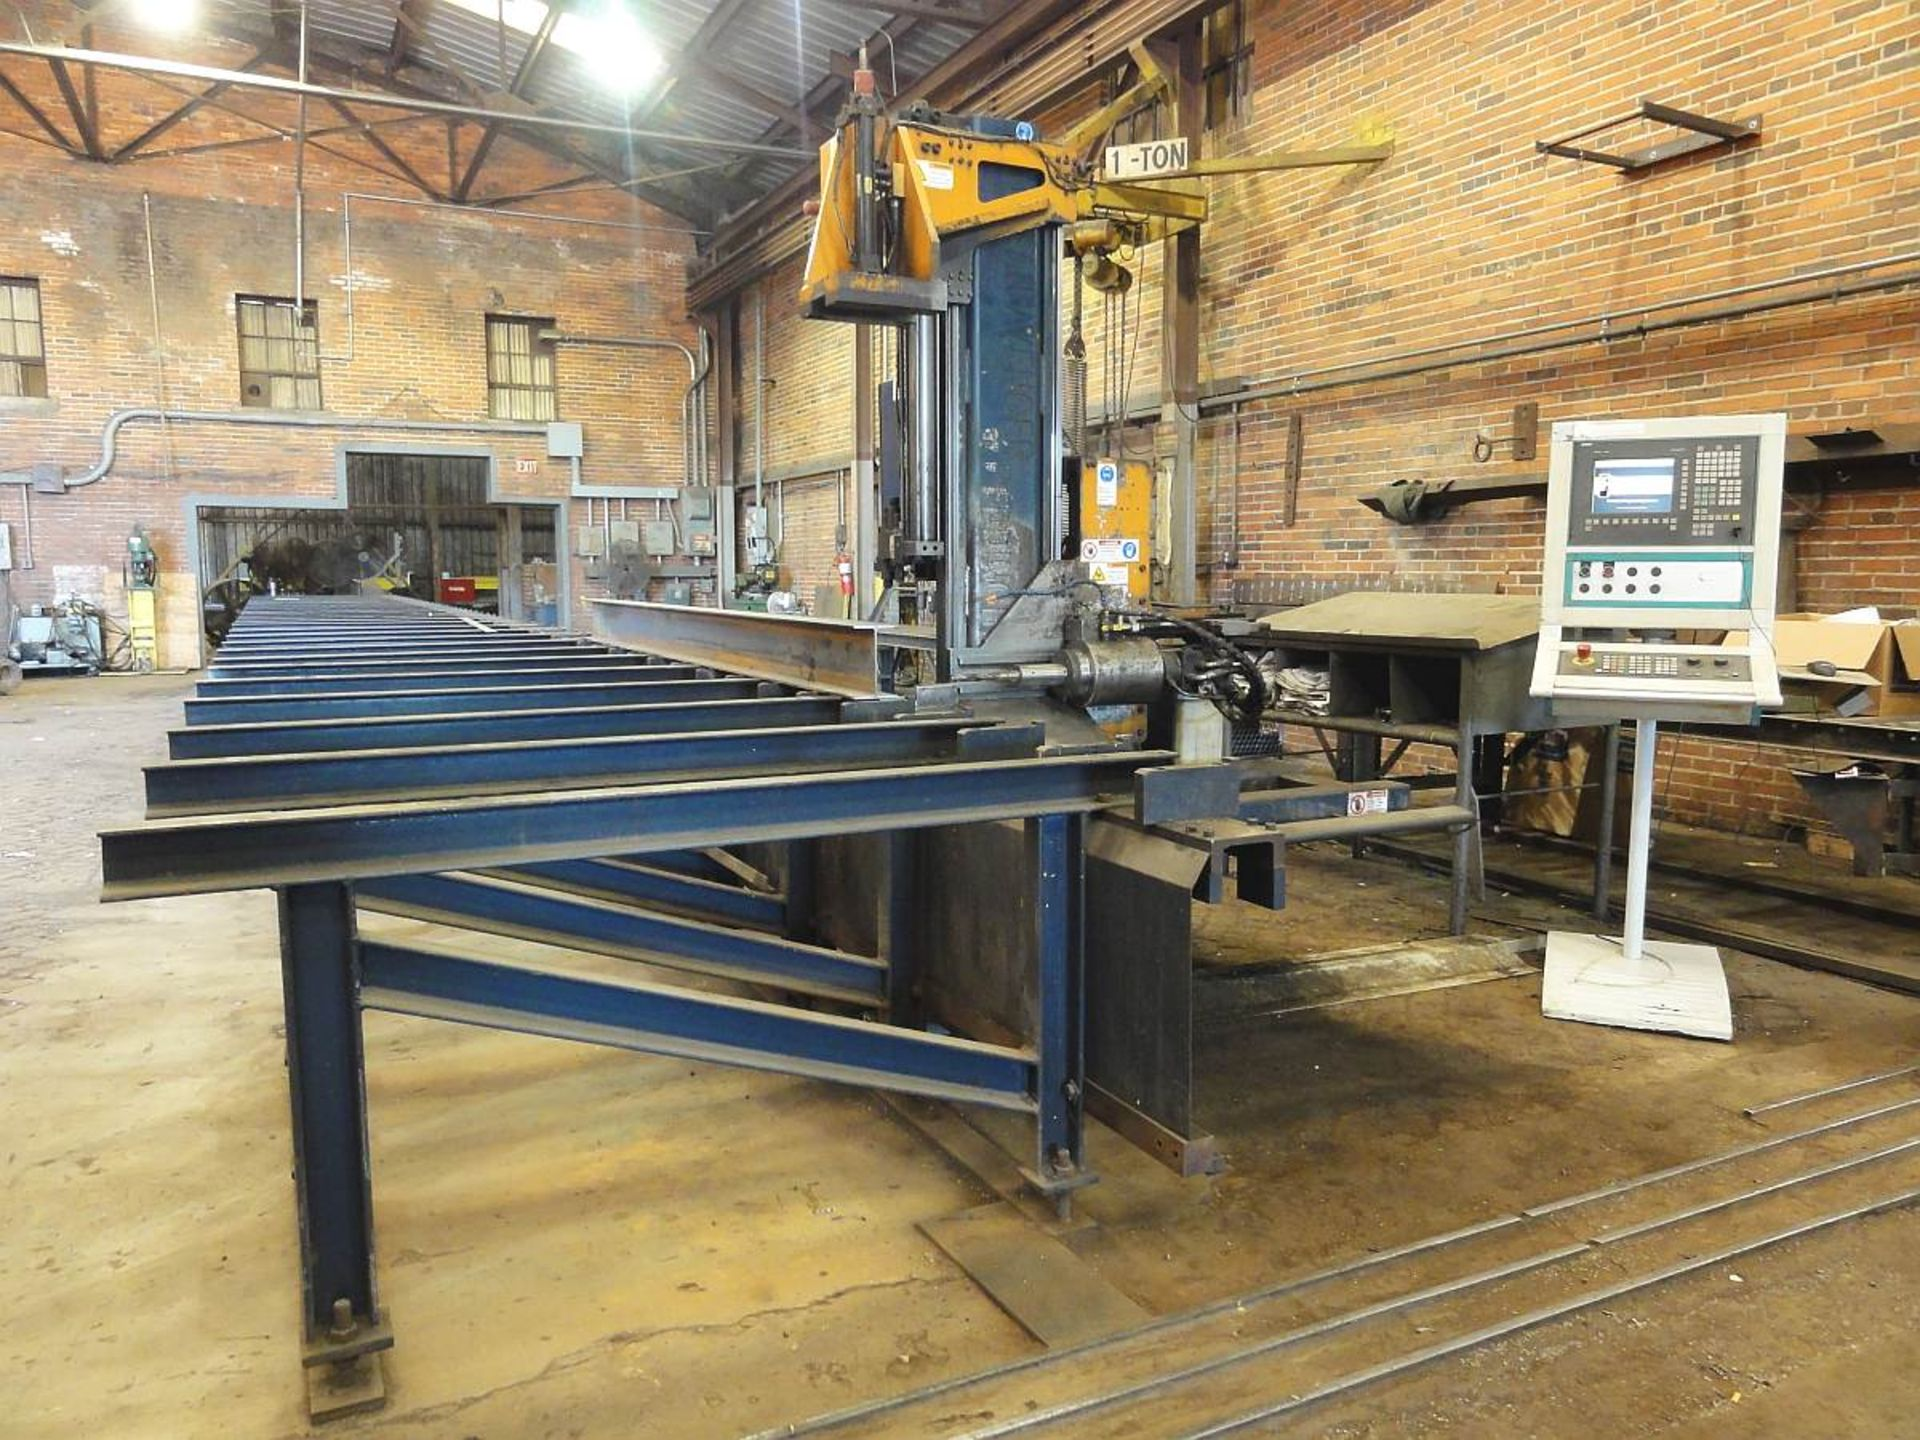 "Lot 259 - Peddinghaus Ocean Avenger CNC Beam/Drill Line, Mdl 1000B, 40"" x 60', Max X & Y Axis Speed 118, 13."